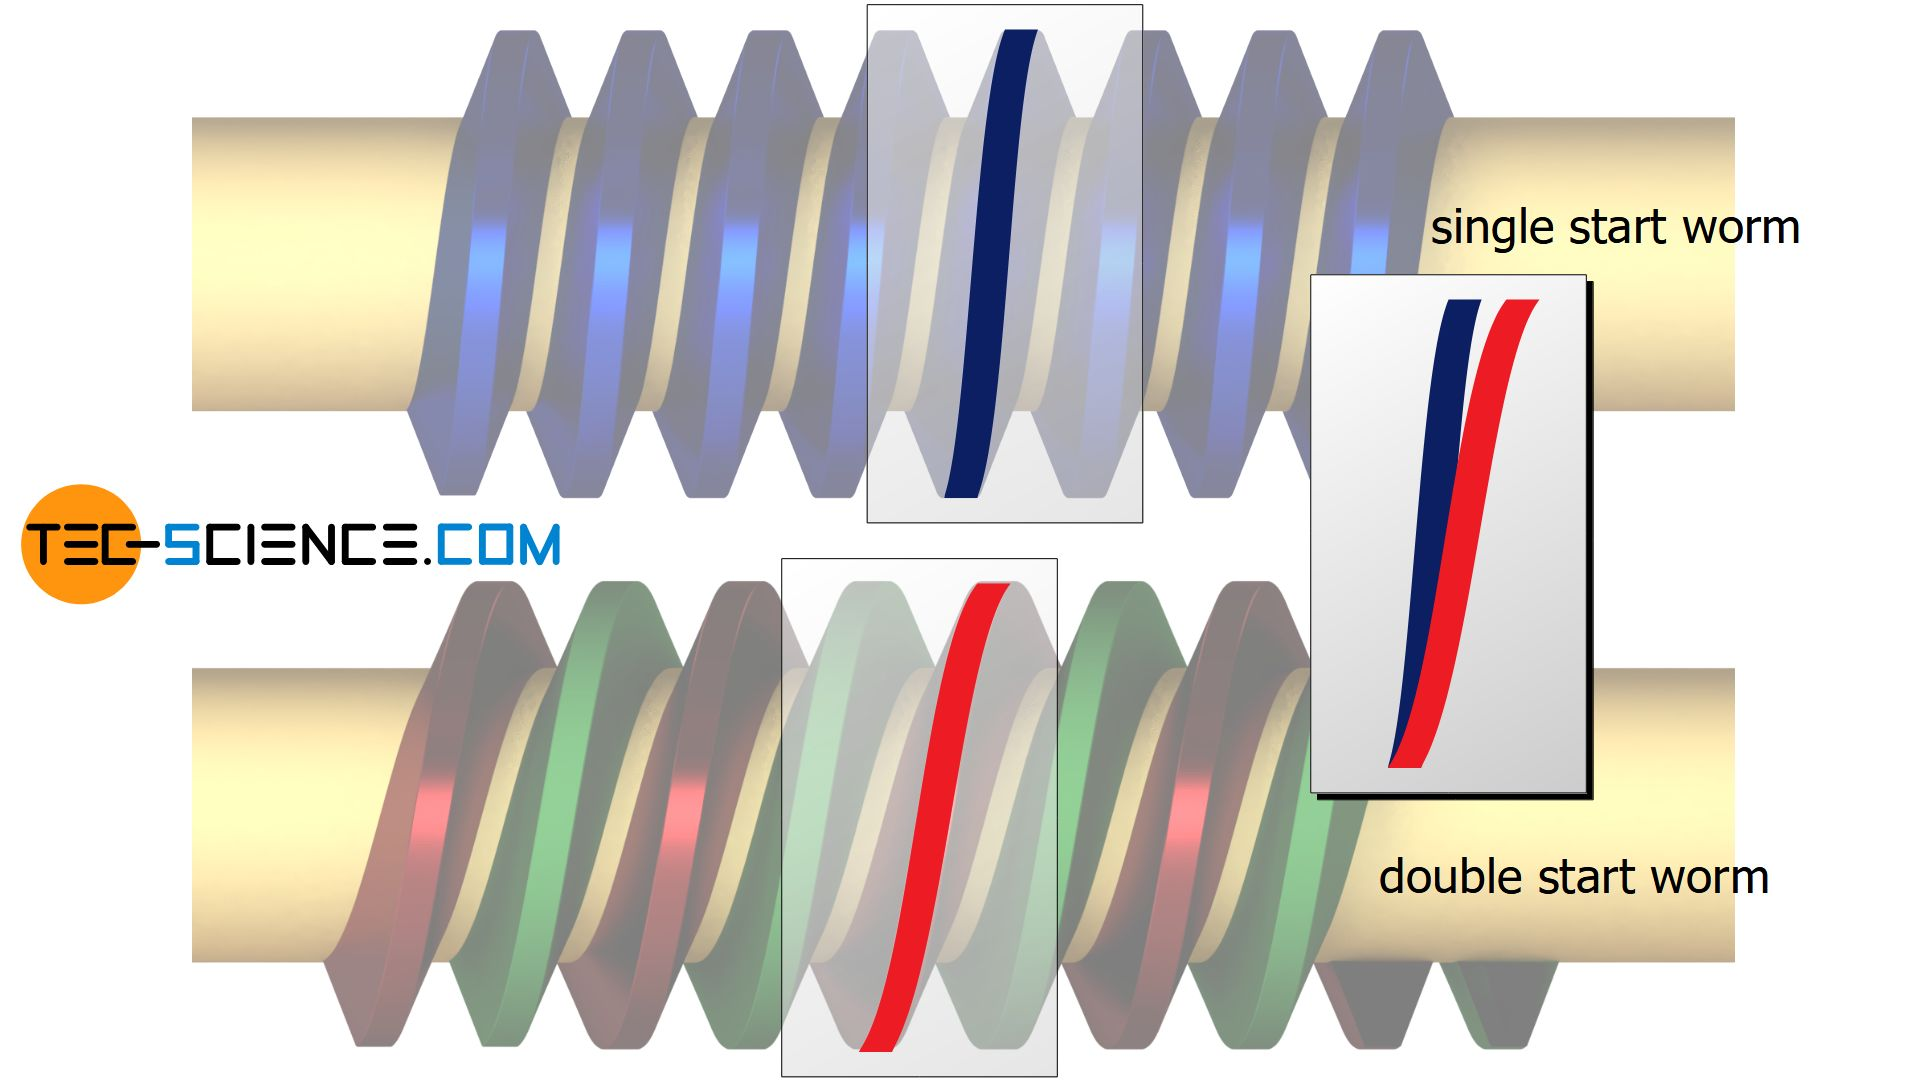 Comparison of the spiral angles between a single and a double start worm